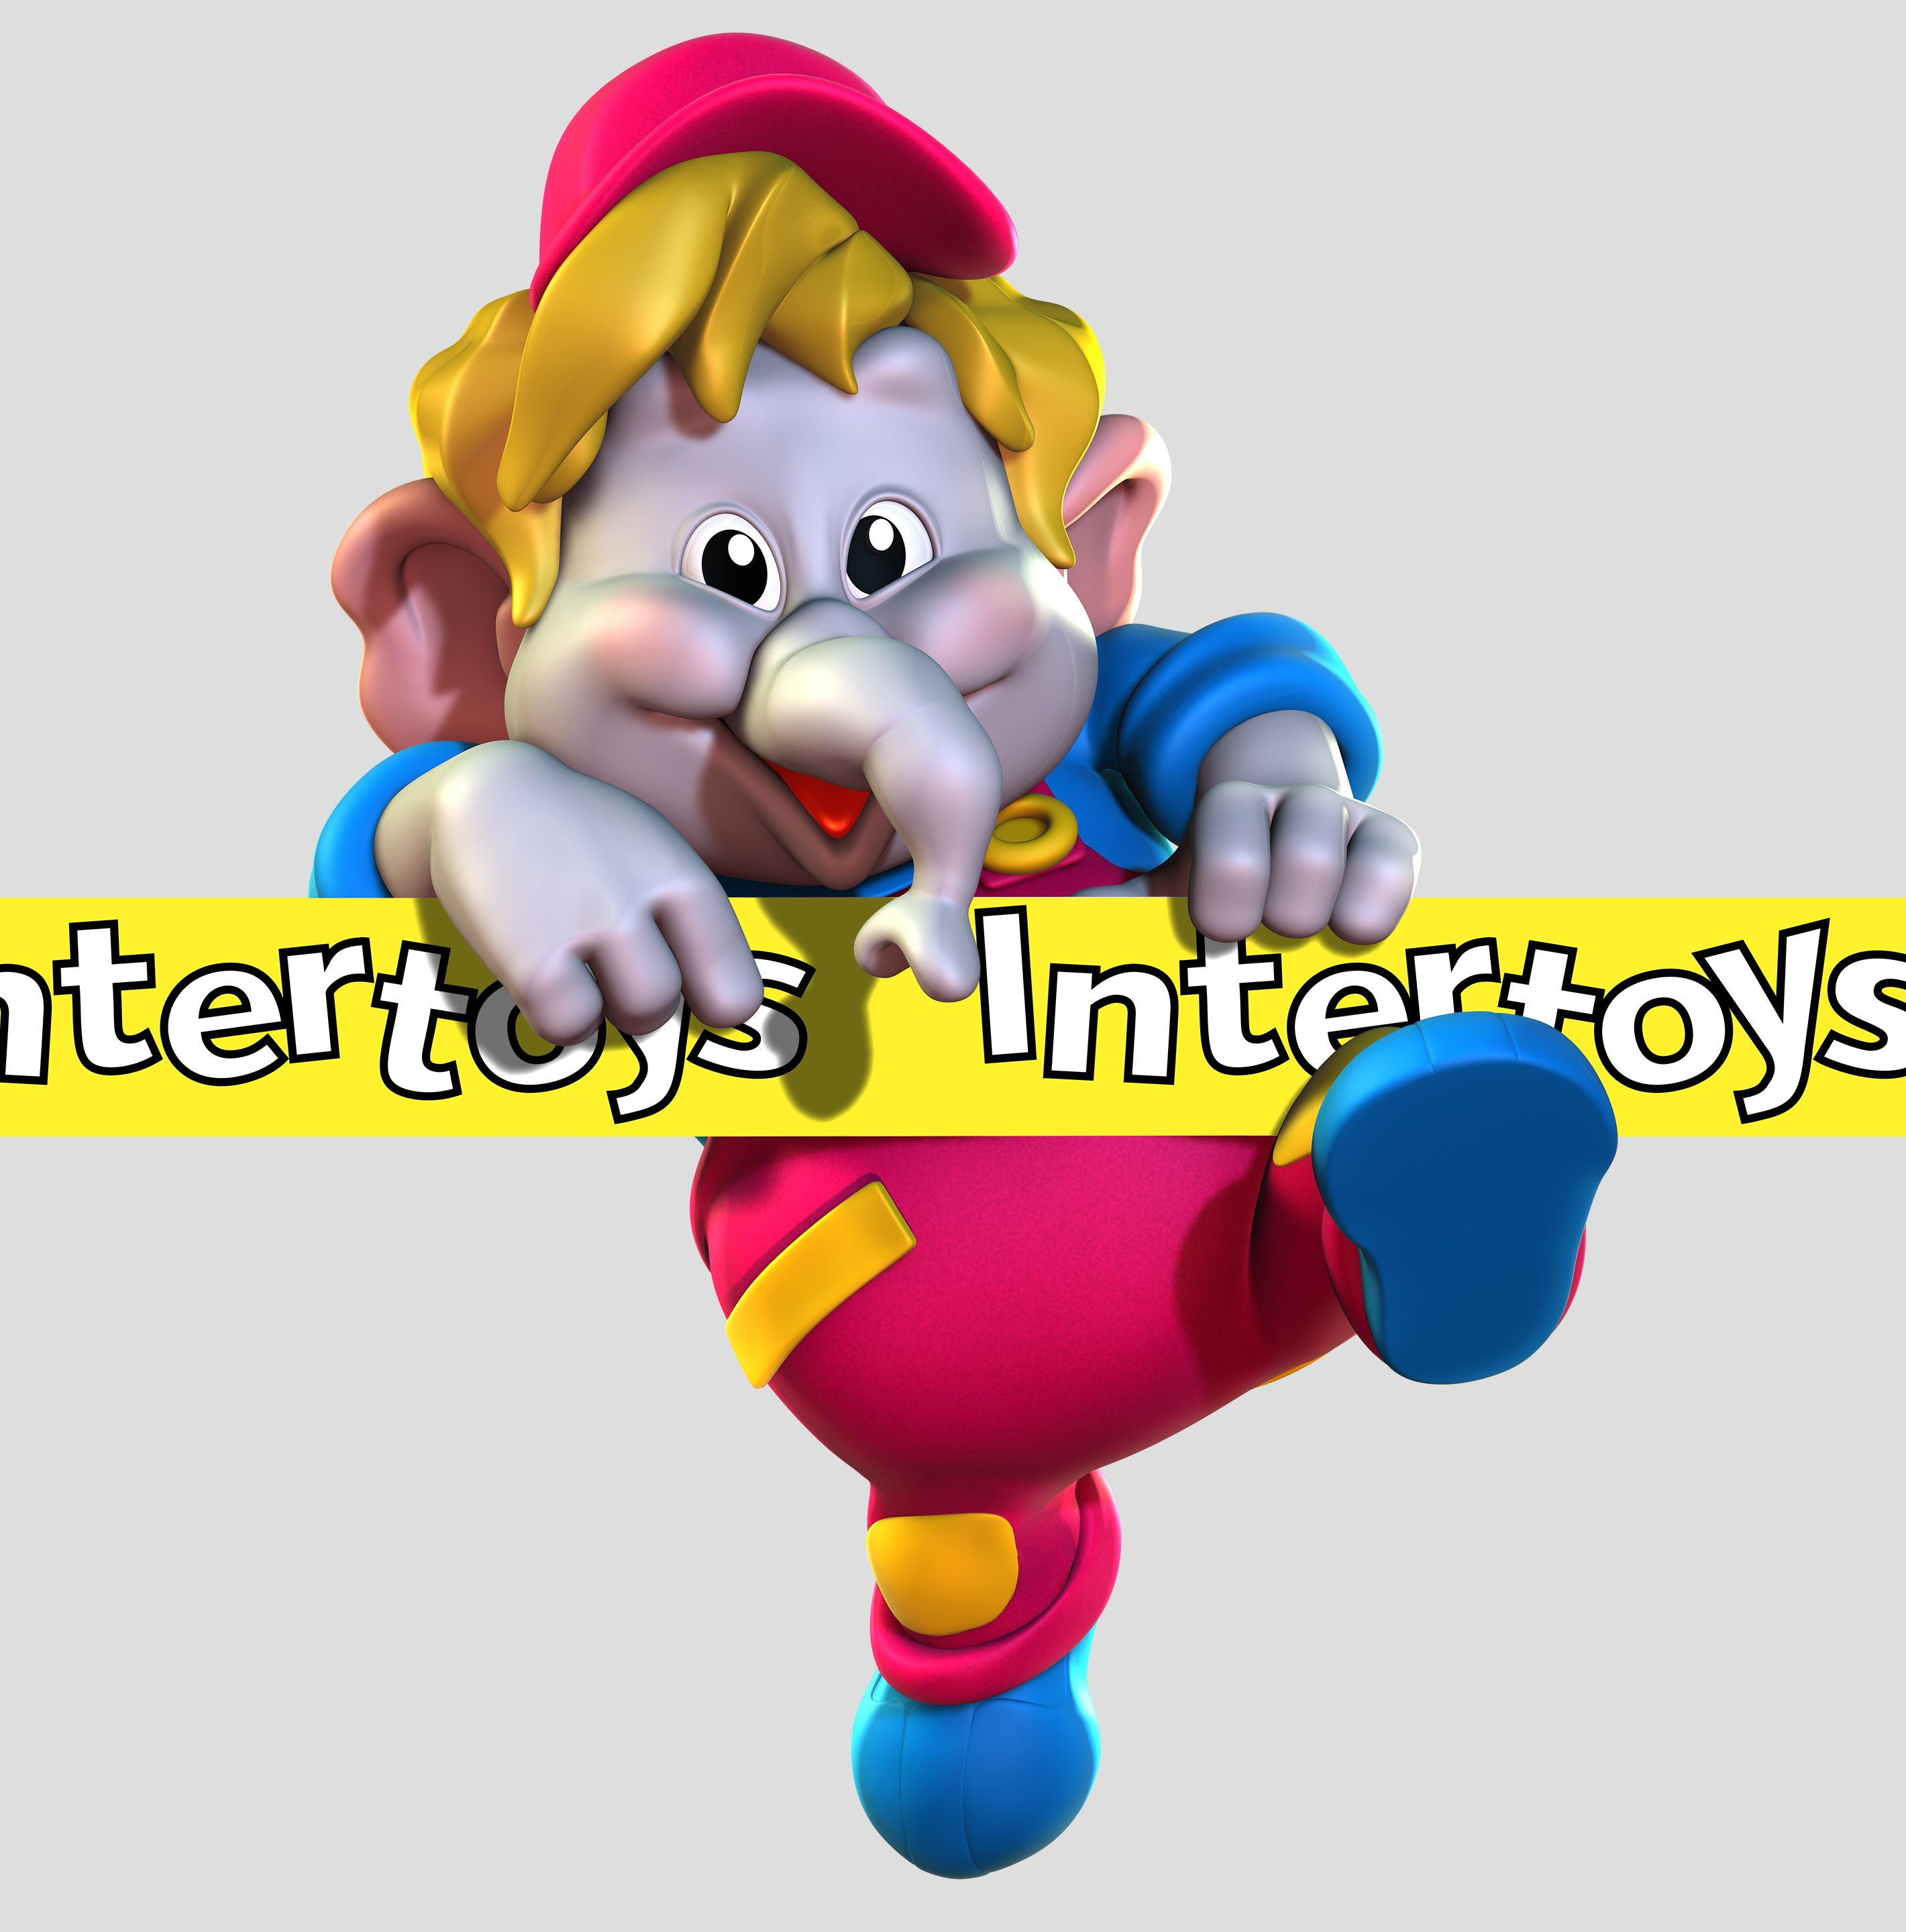 Intertoys Toytoy Streamer Comichouse